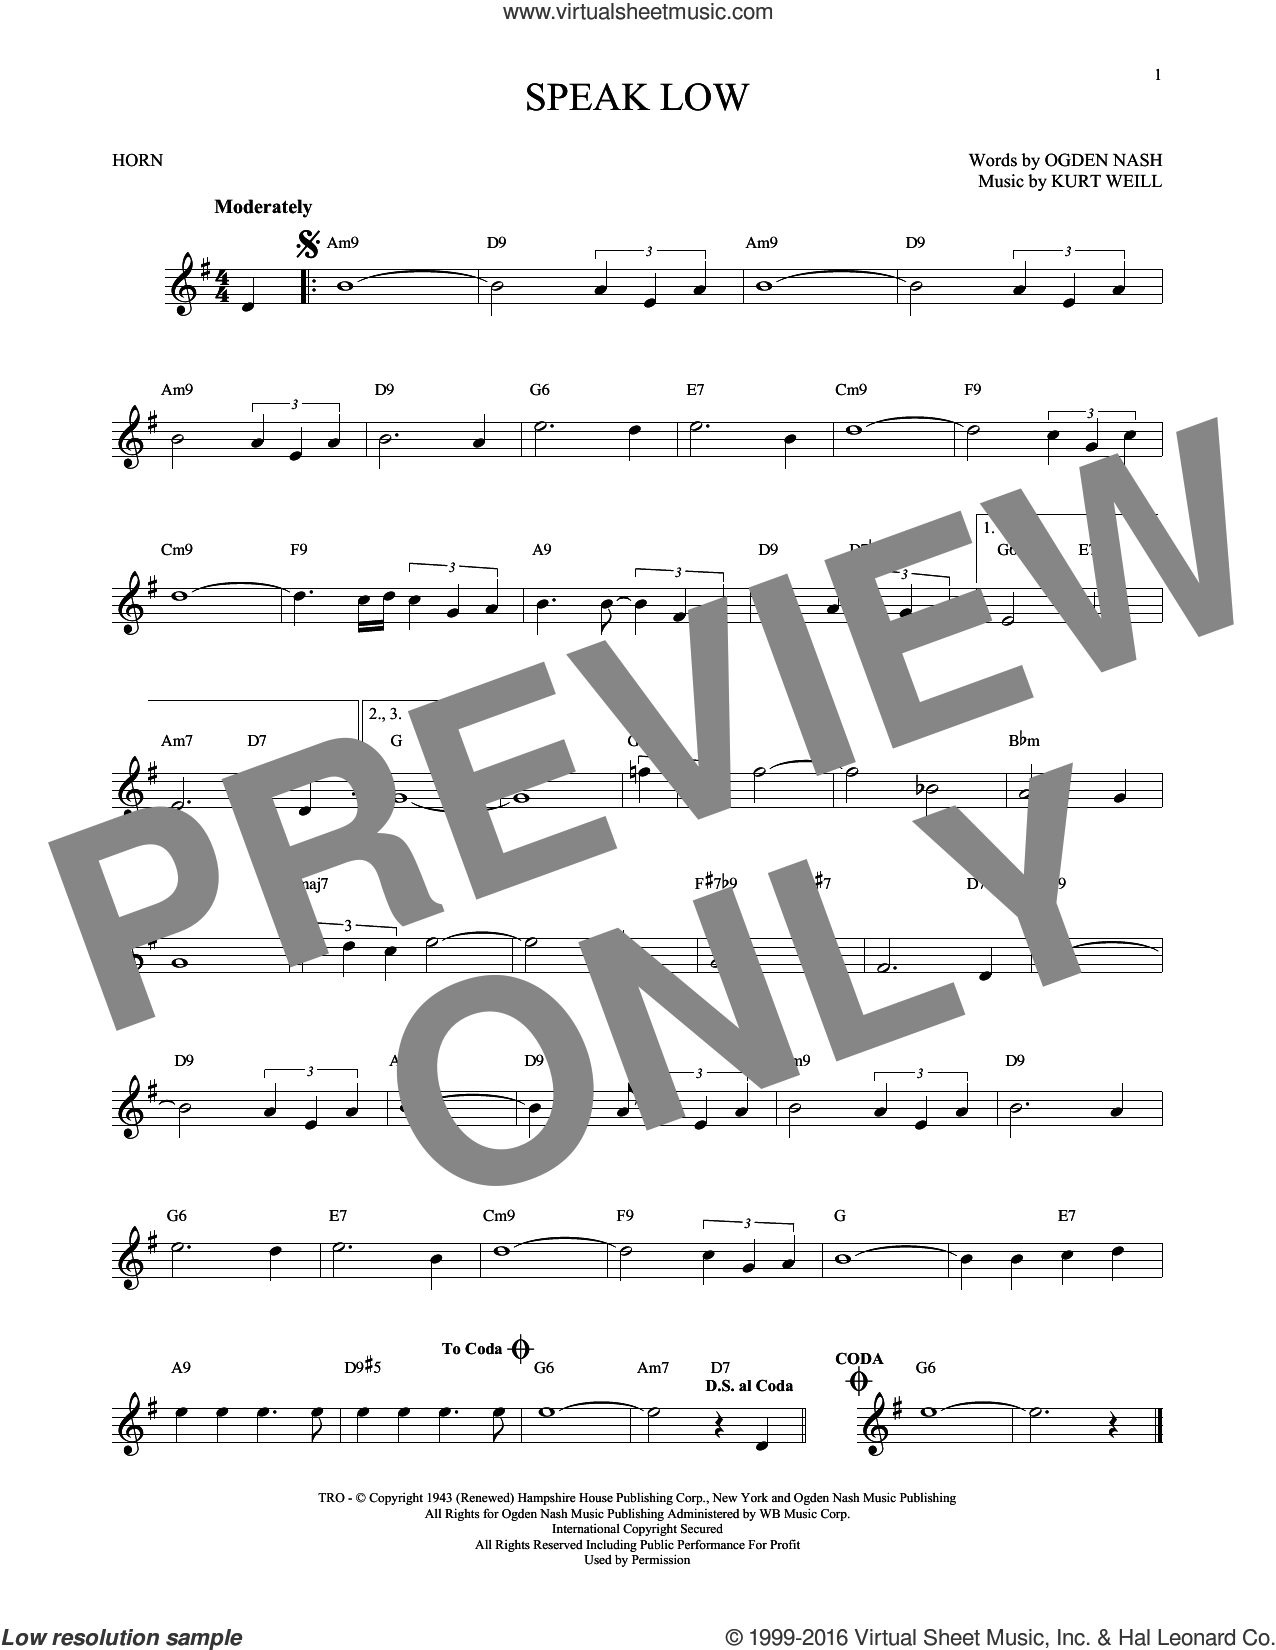 Speak Low sheet music for horn solo by Kurt Weill and Ogden Nash, intermediate skill level